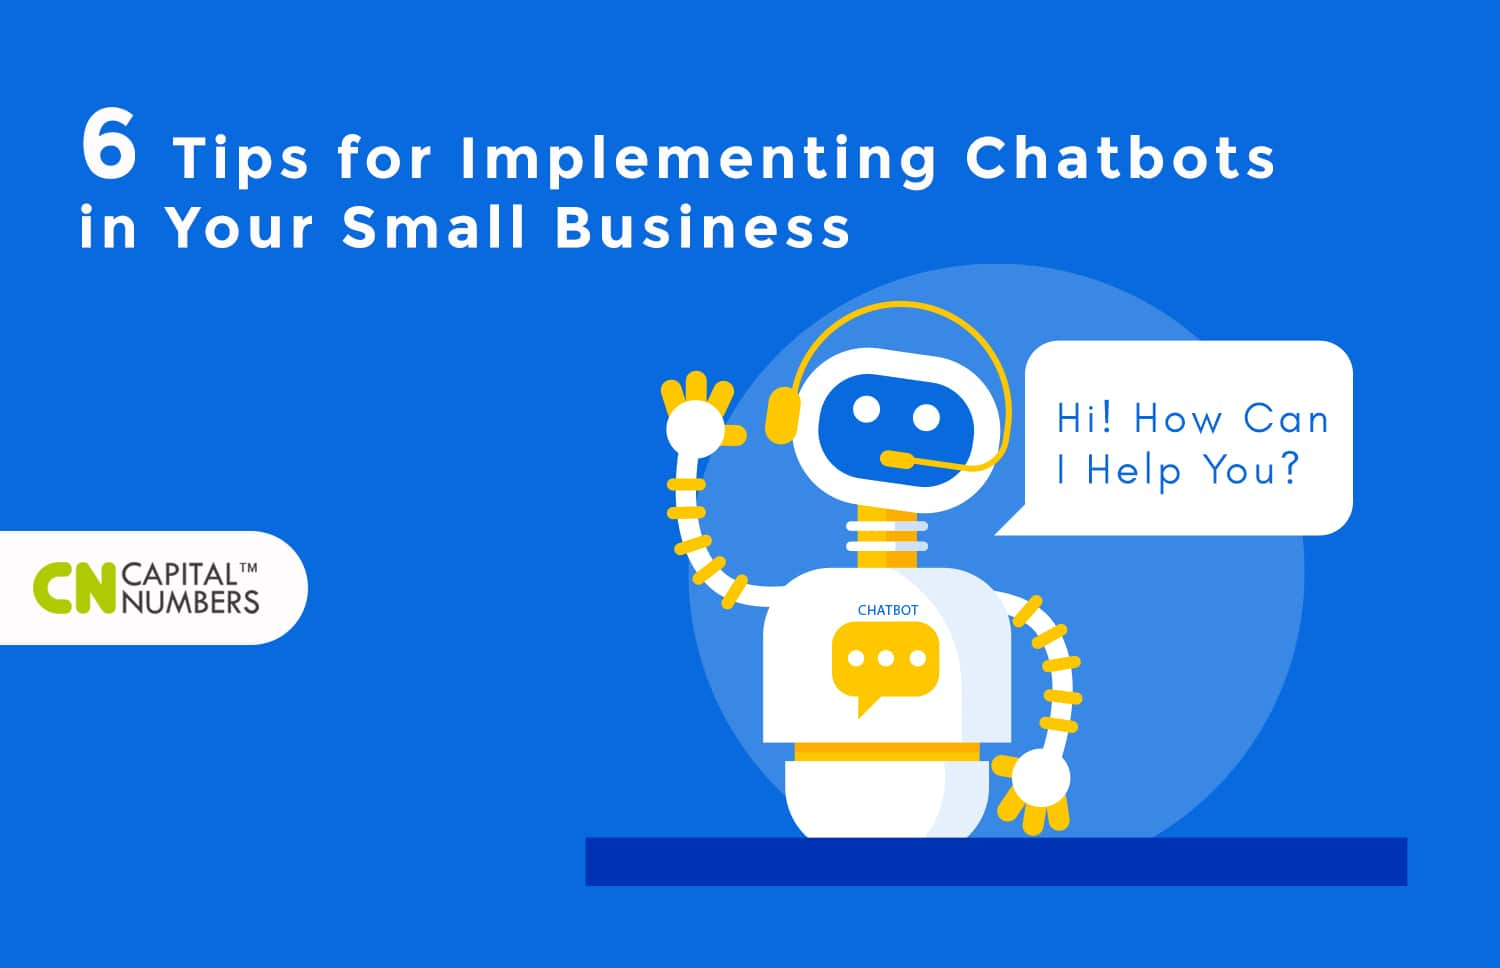 6 Tips for Implementing Chatbots in Your Small Business